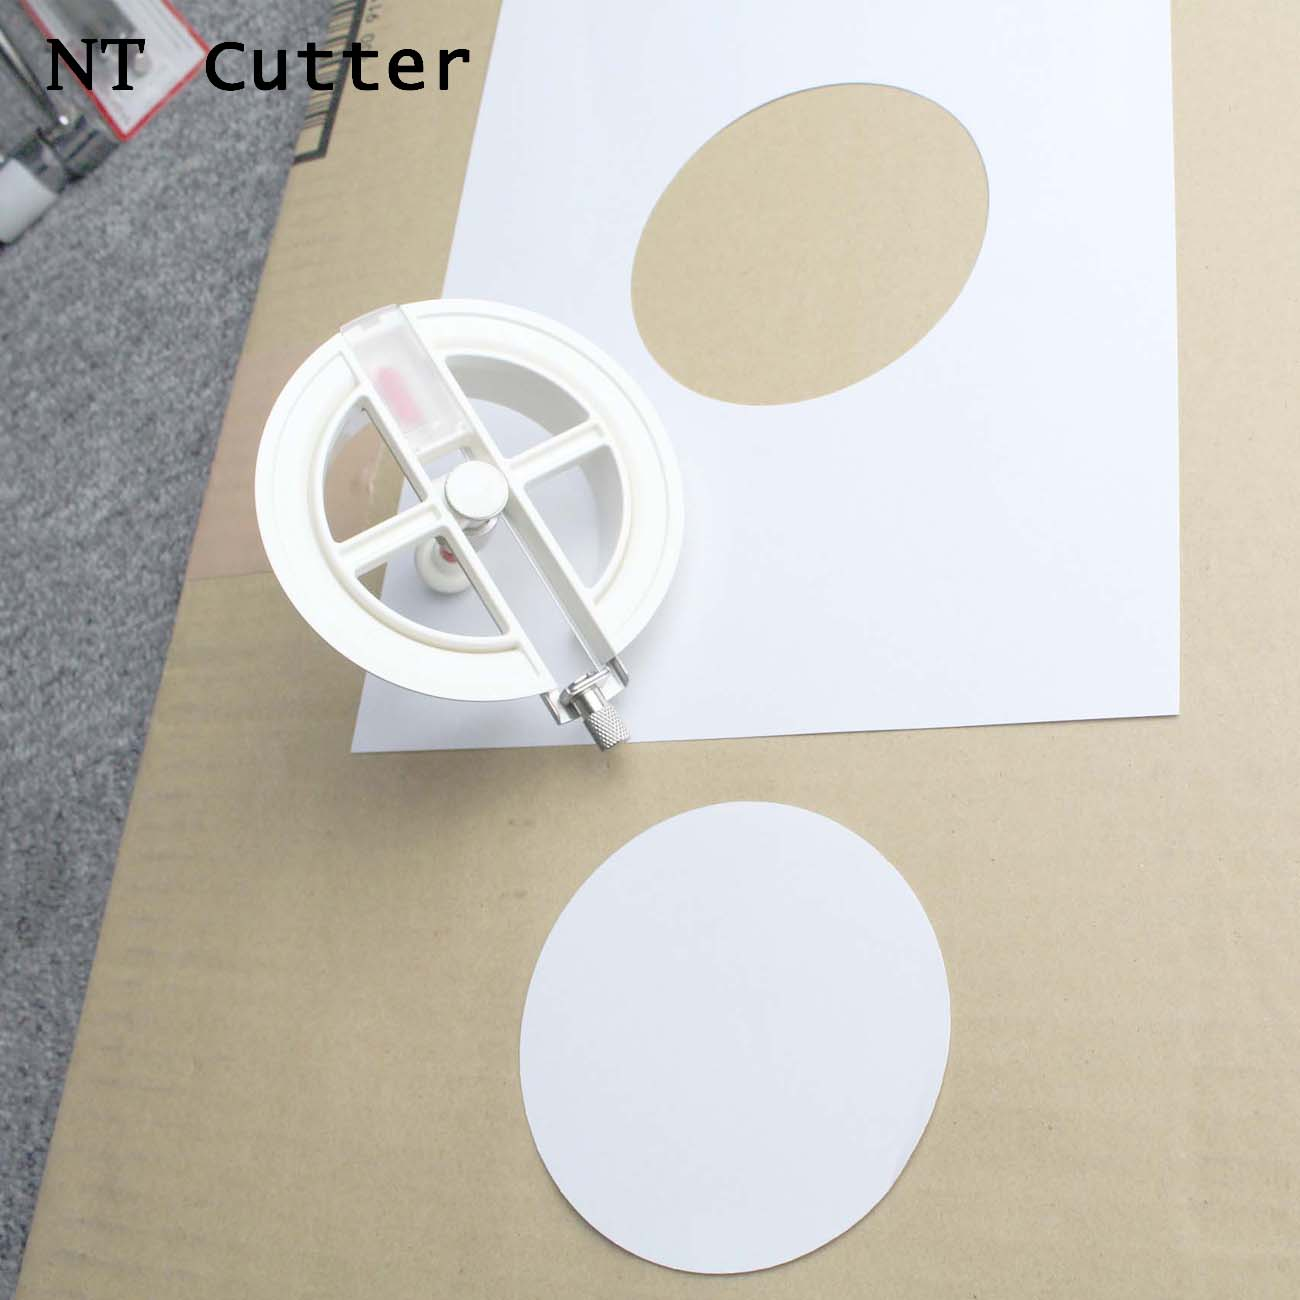 1PC Japan NT Cutter IC-1500P Circle Compass Cutter For Paper Cutting Craft New High Quality Knife Utility Knife